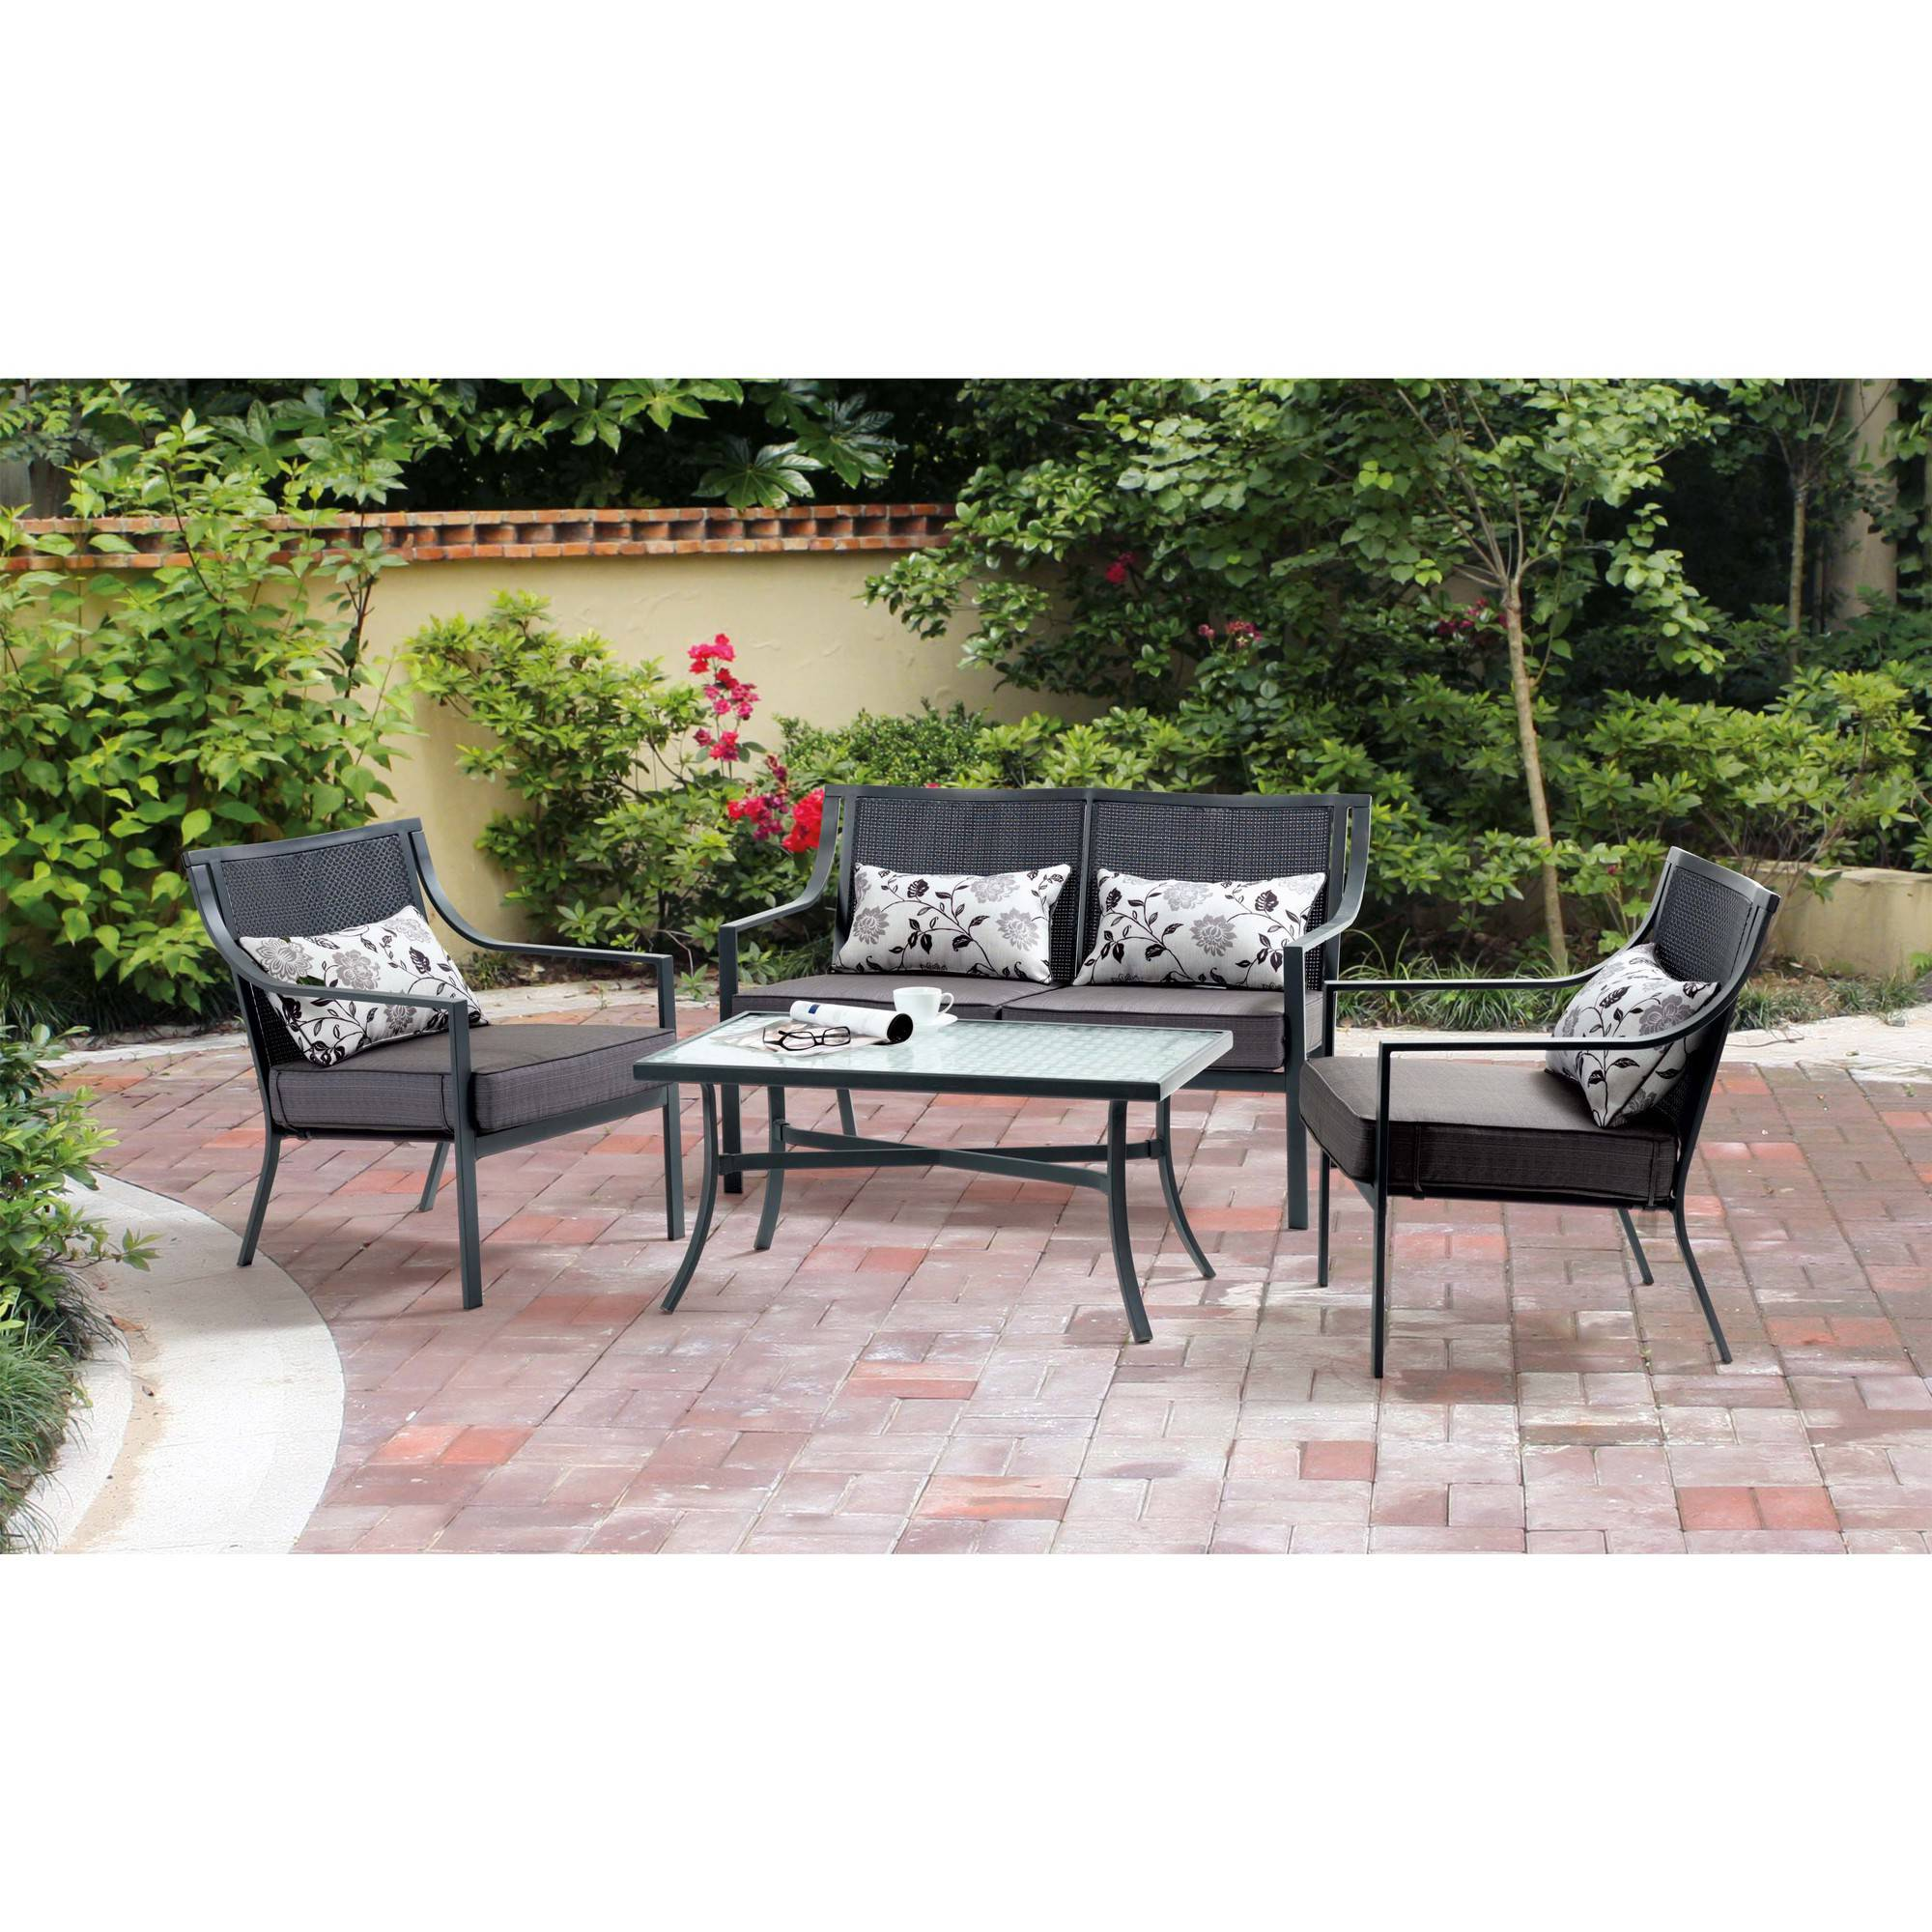 Mainstays Alexandra Square 4-Piece Patio Conversation Set, Grey with Leaves, Seats 4